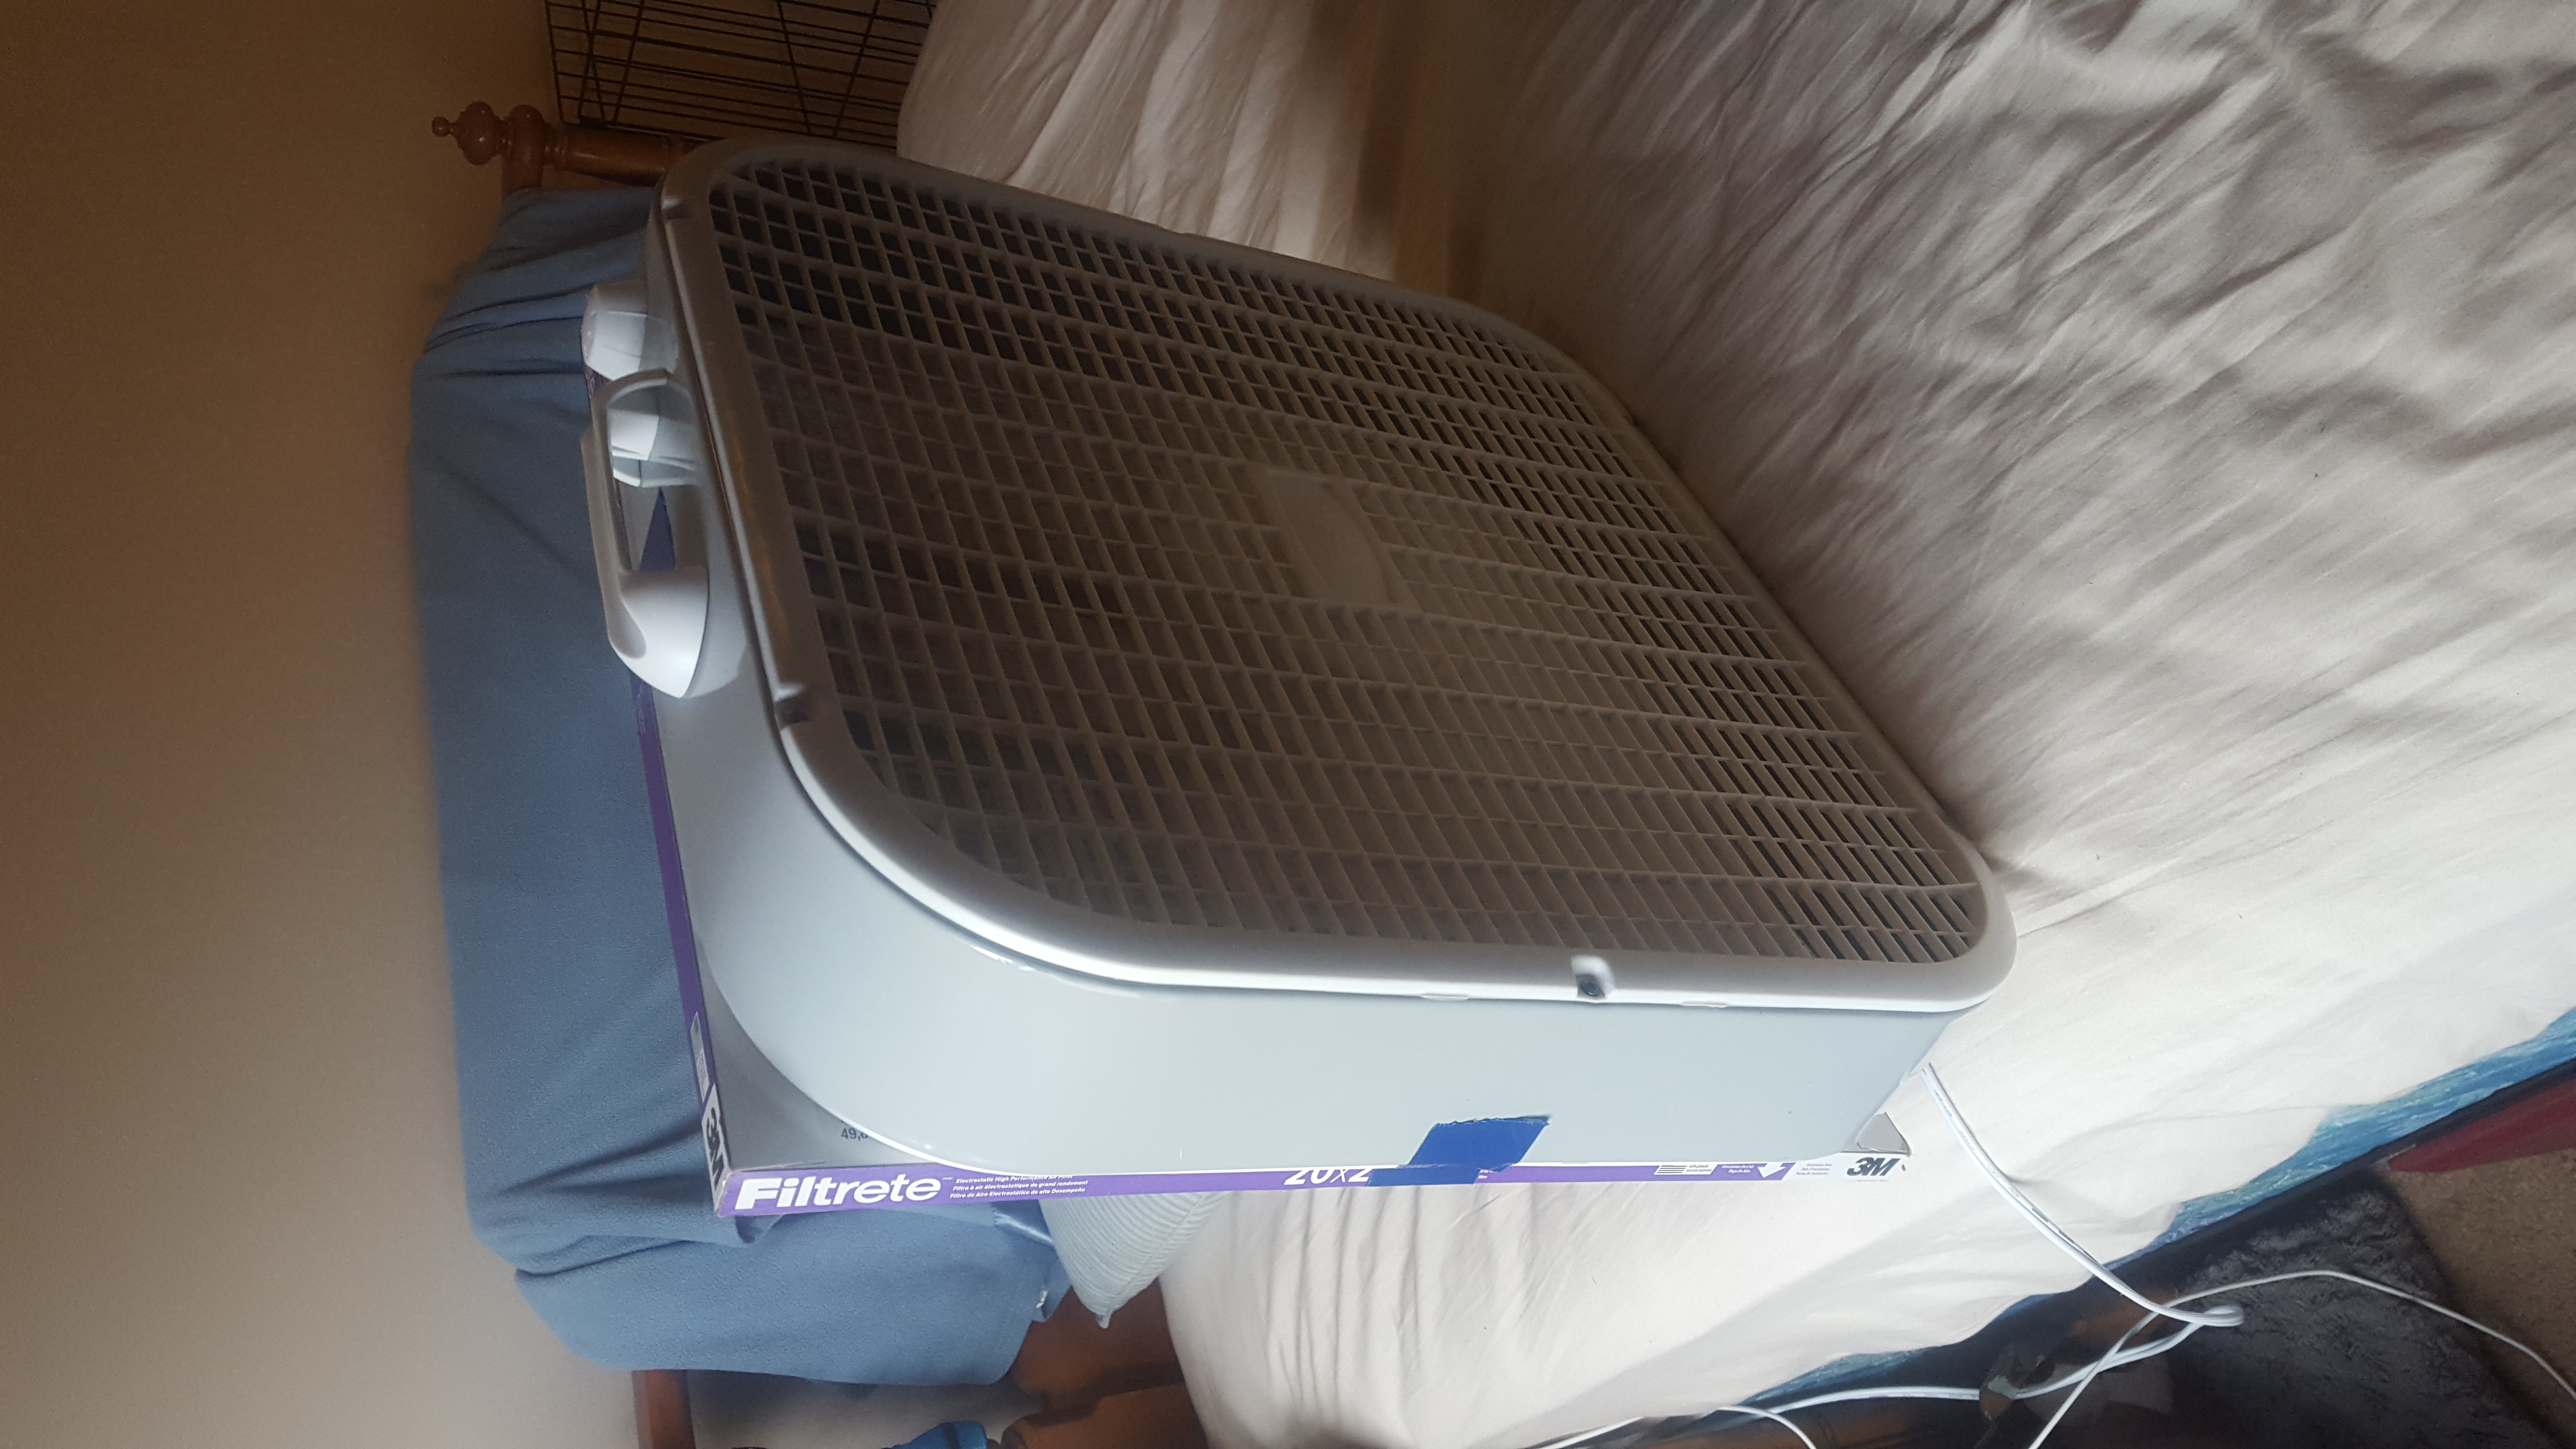 Cheap Air Filters >> Cheap Awesome 30 Air Filter Frugality Forum At Permies